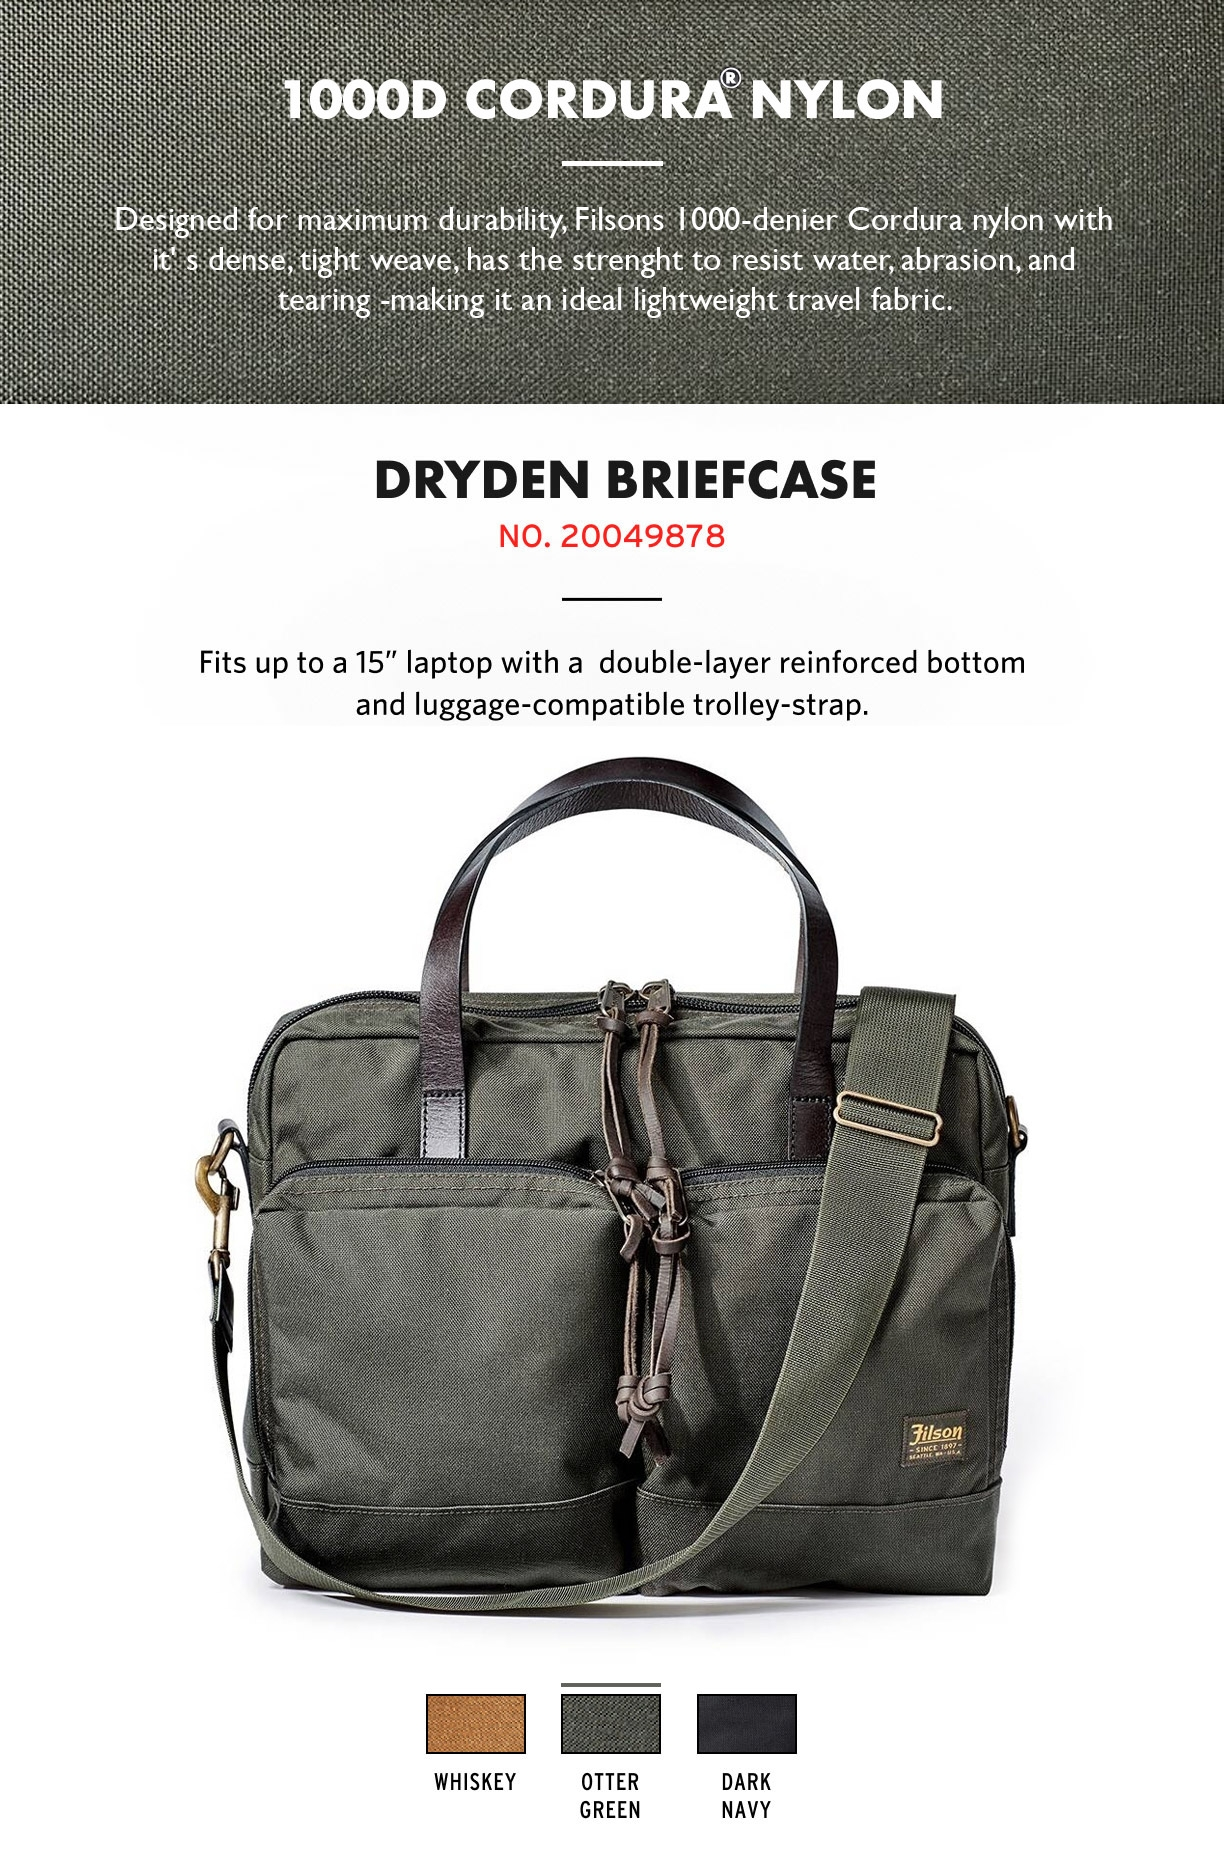 Filson Dryden Briefcase Otter Green Product-information